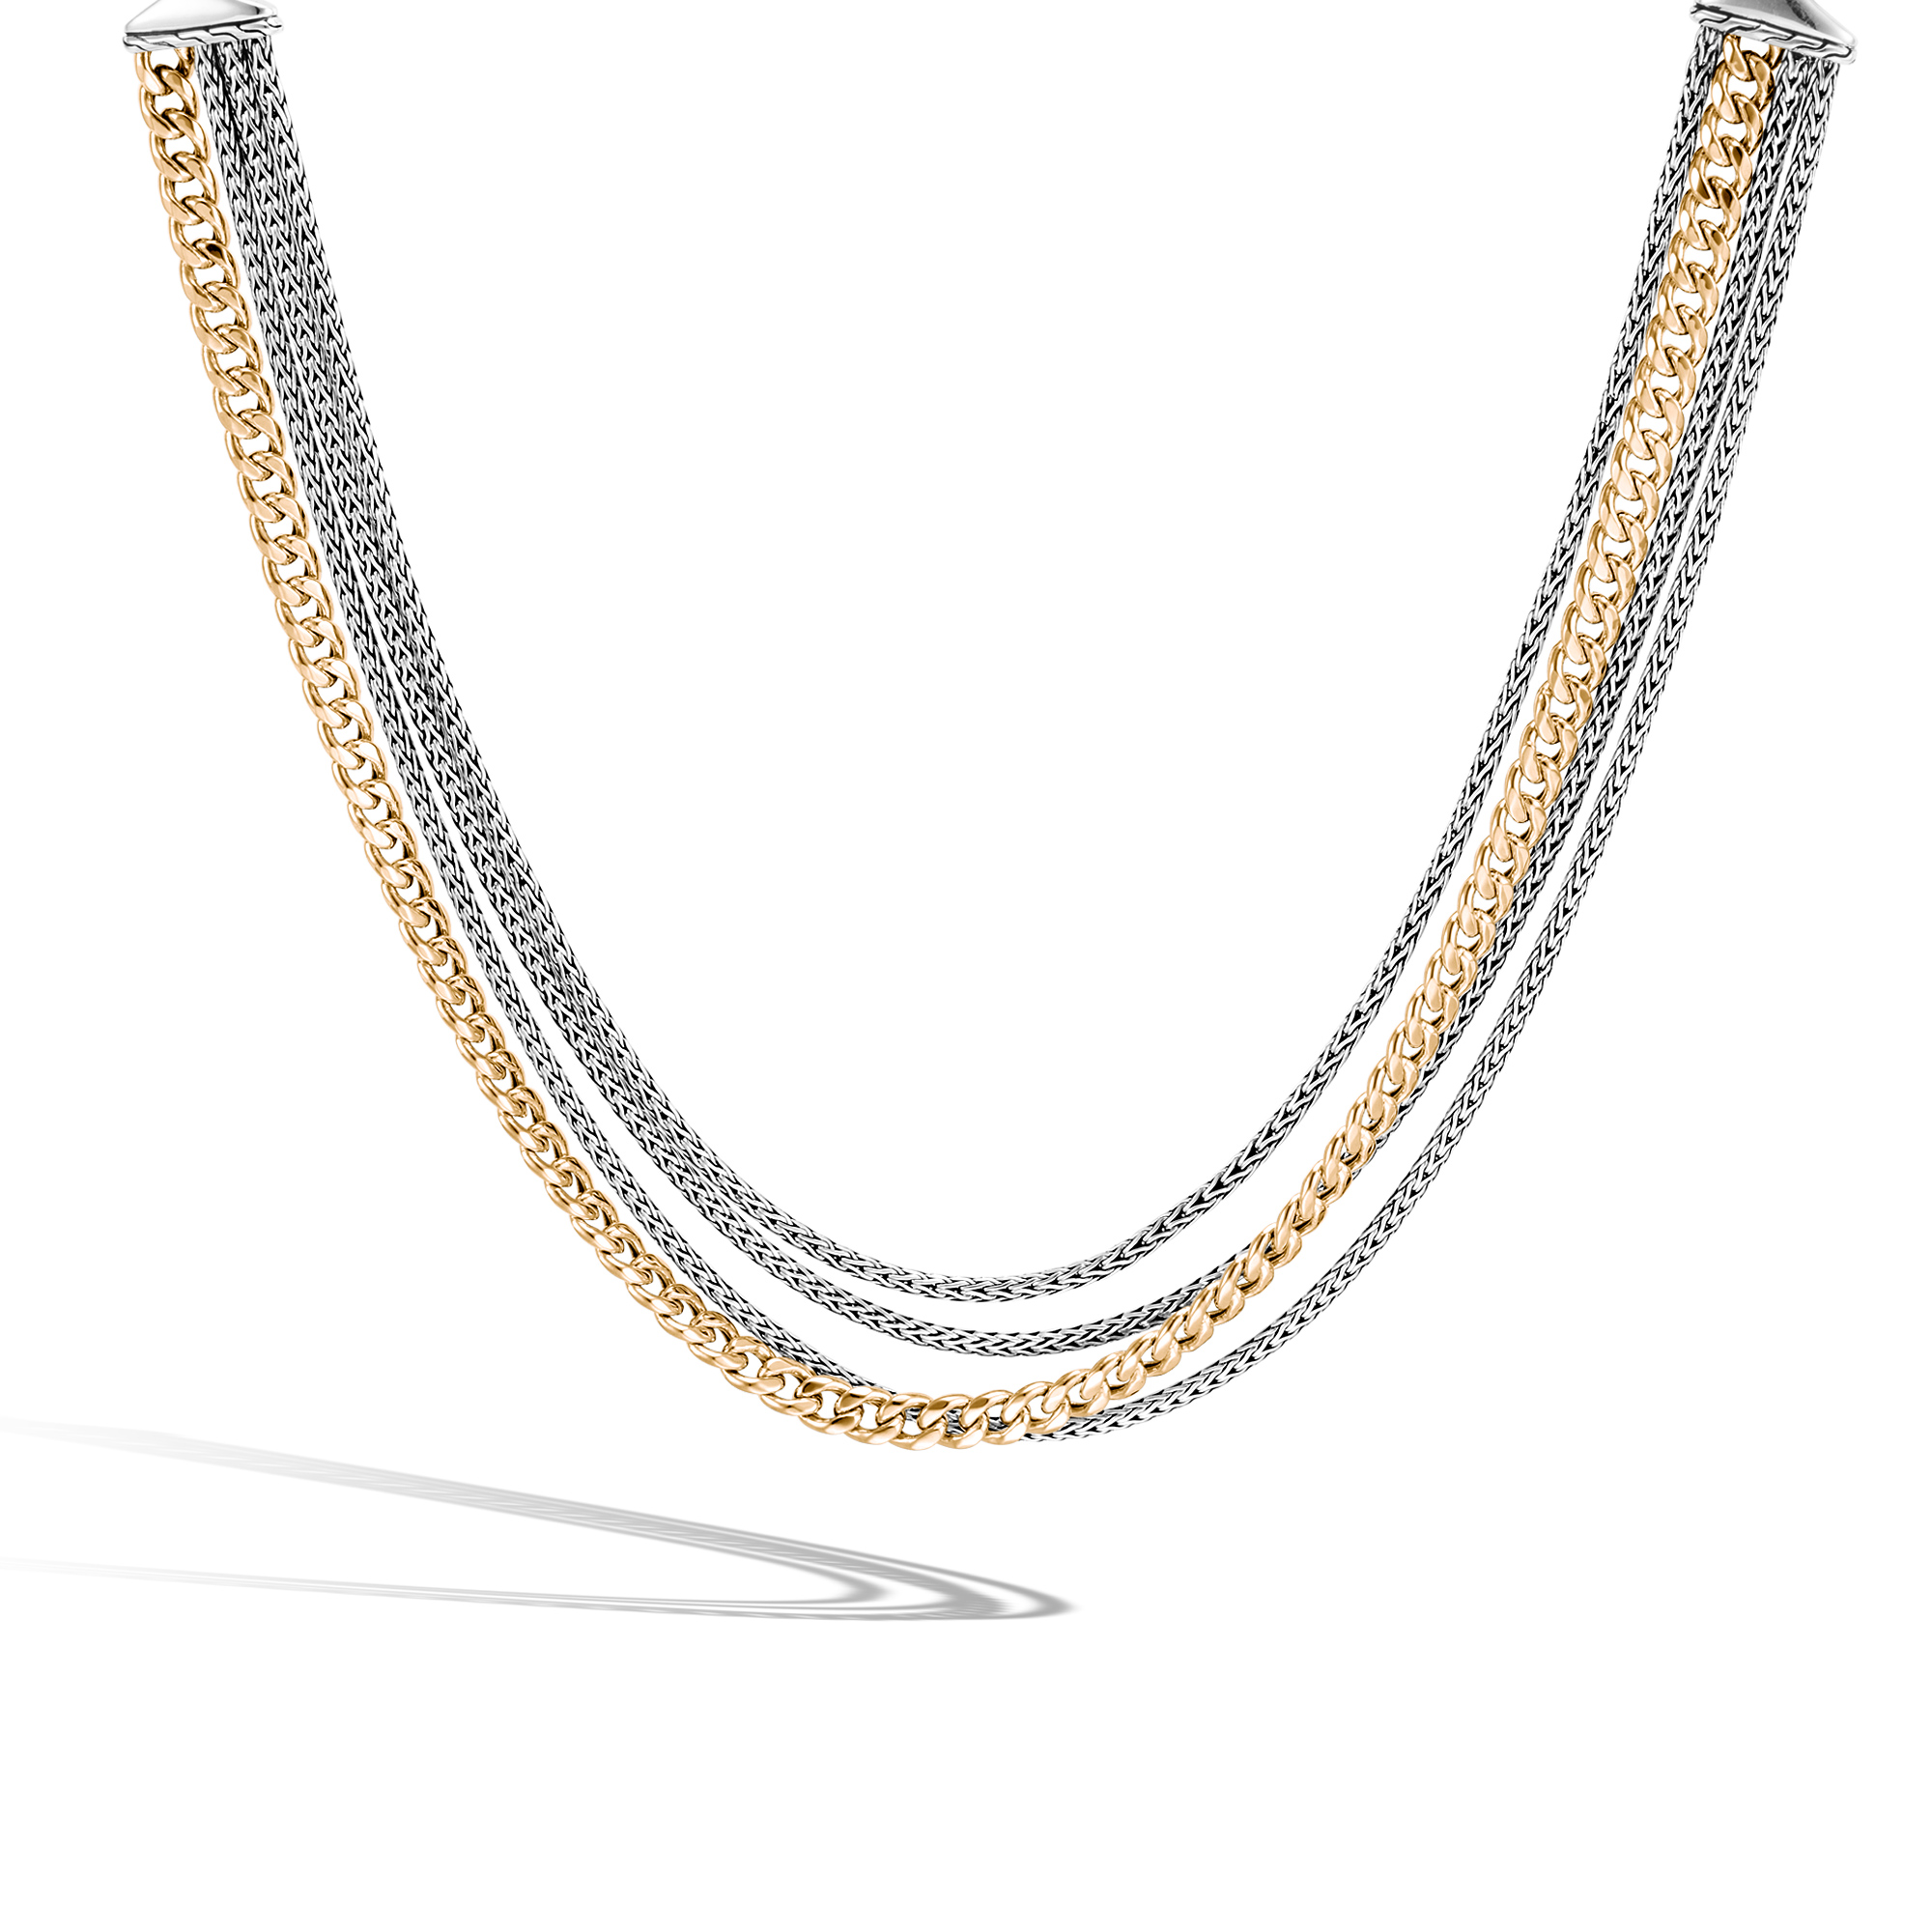 AAxJH Classic Chain Multi Row Necklace in Silver and 18K Gold, , large